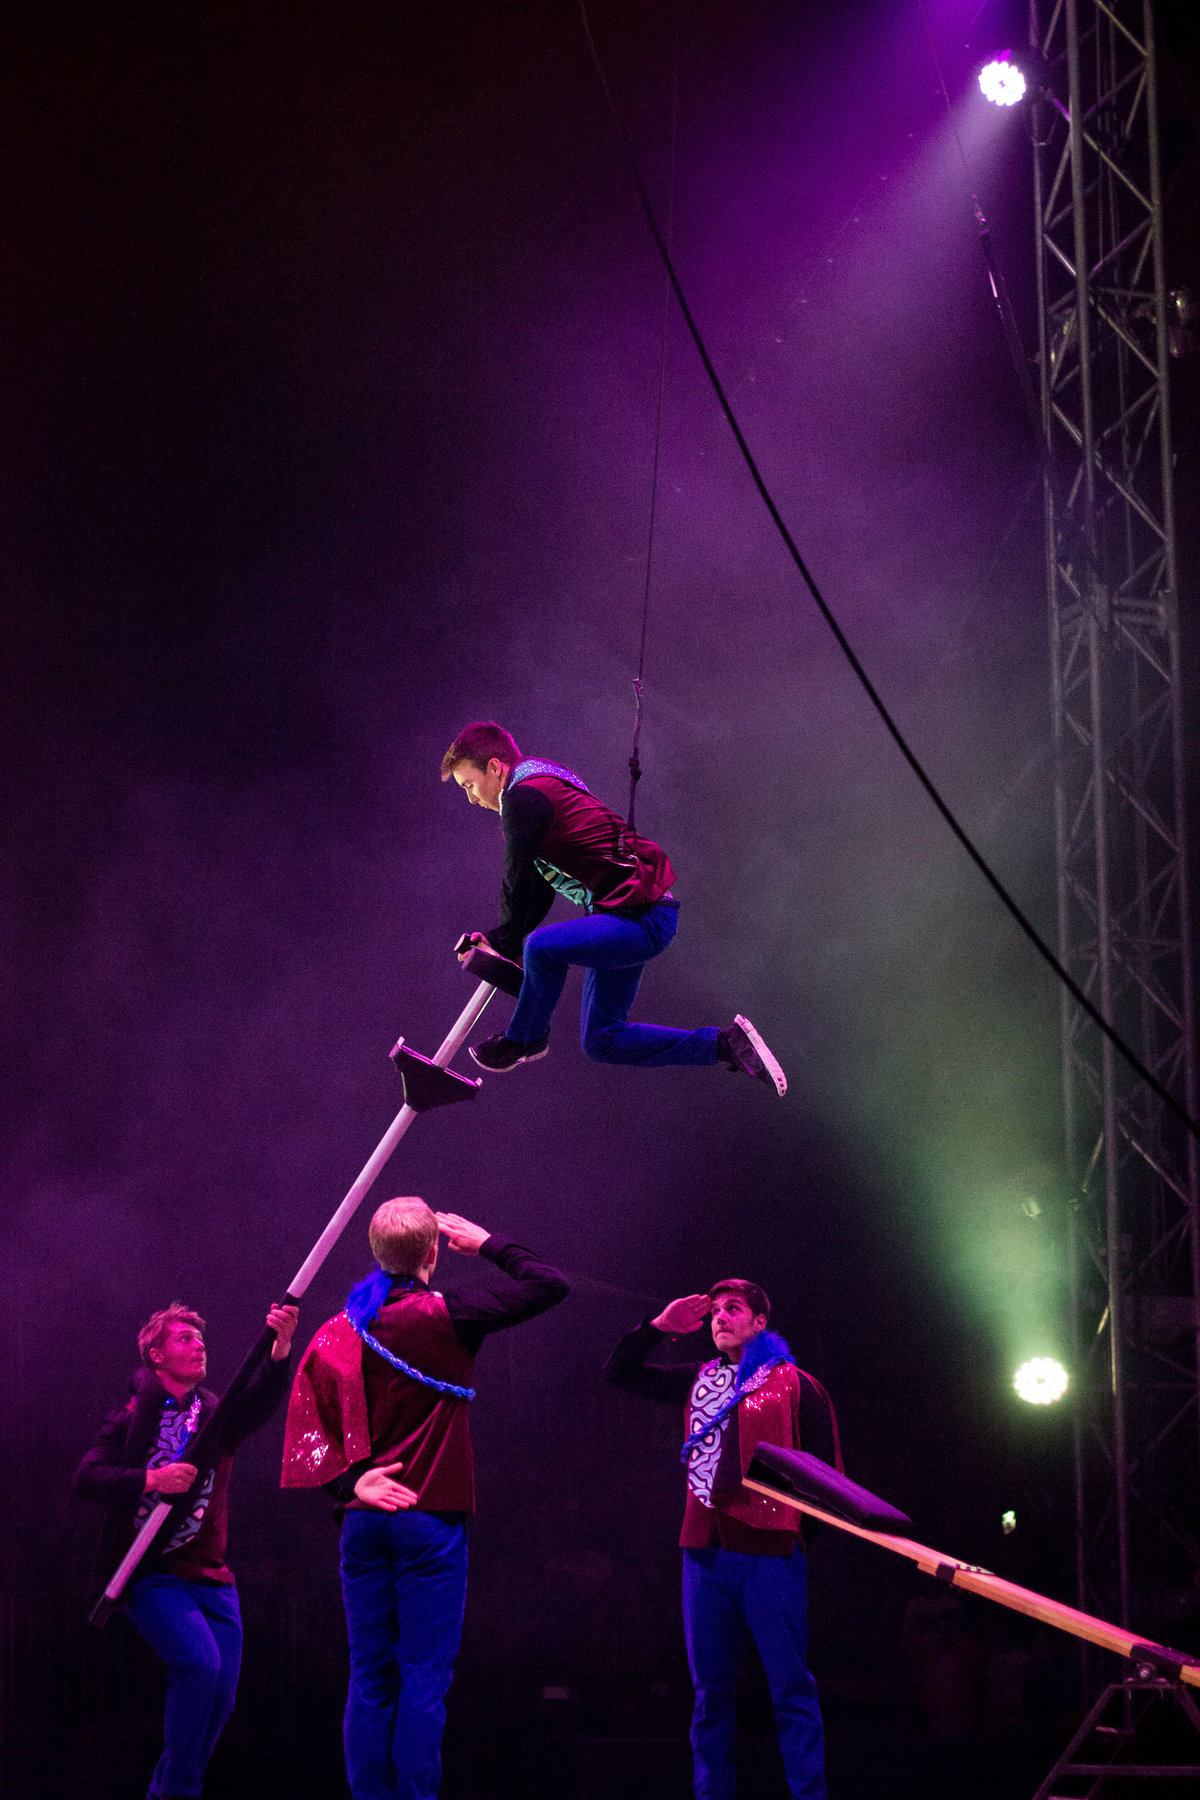 Florida_Circus_Photography_127